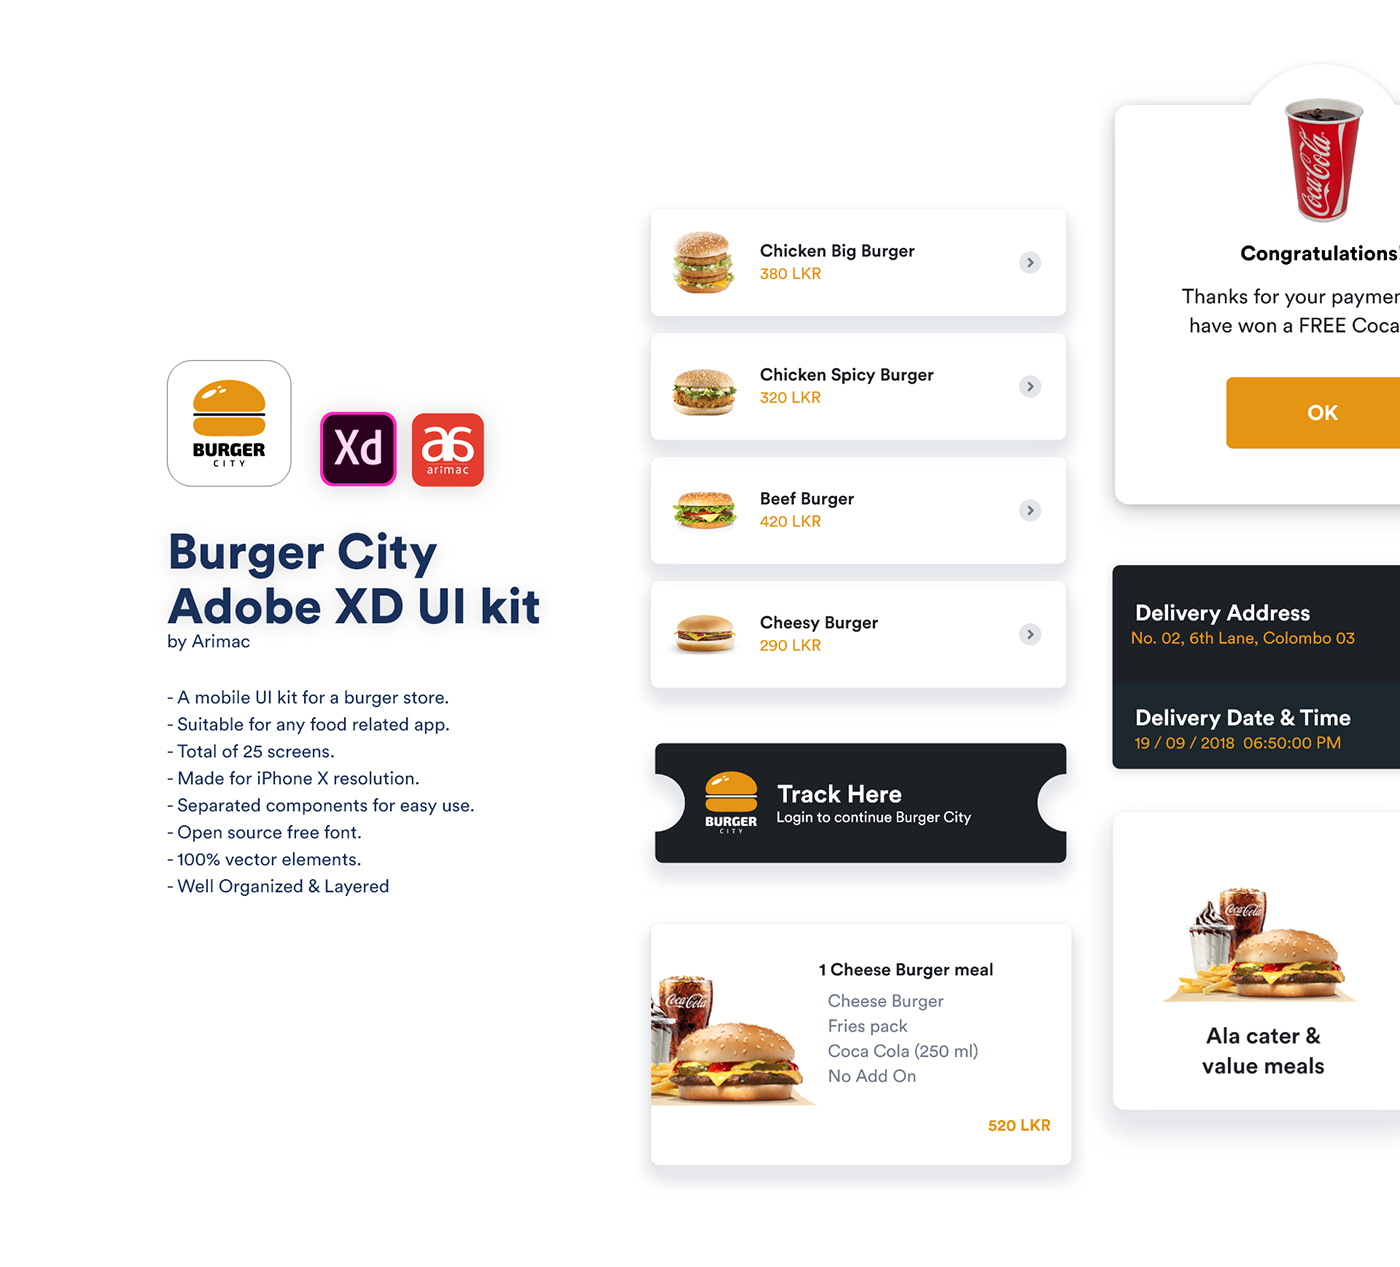 Burger City - Free Adobe XD UI kit on Behance